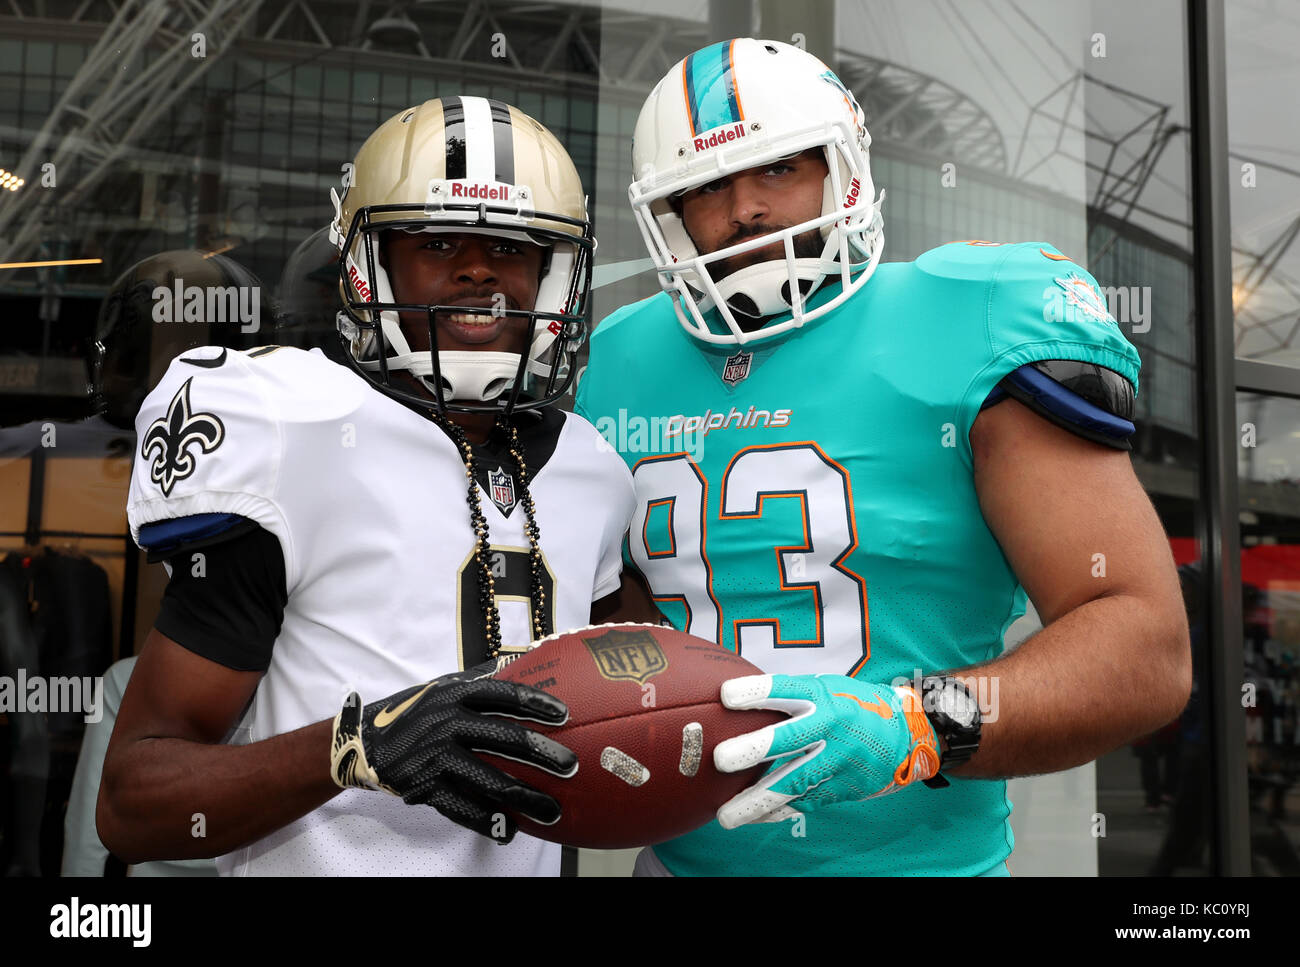 Miami Dolphins Fans Stock Photos & Miami Dolphins Fans Stock Images ...